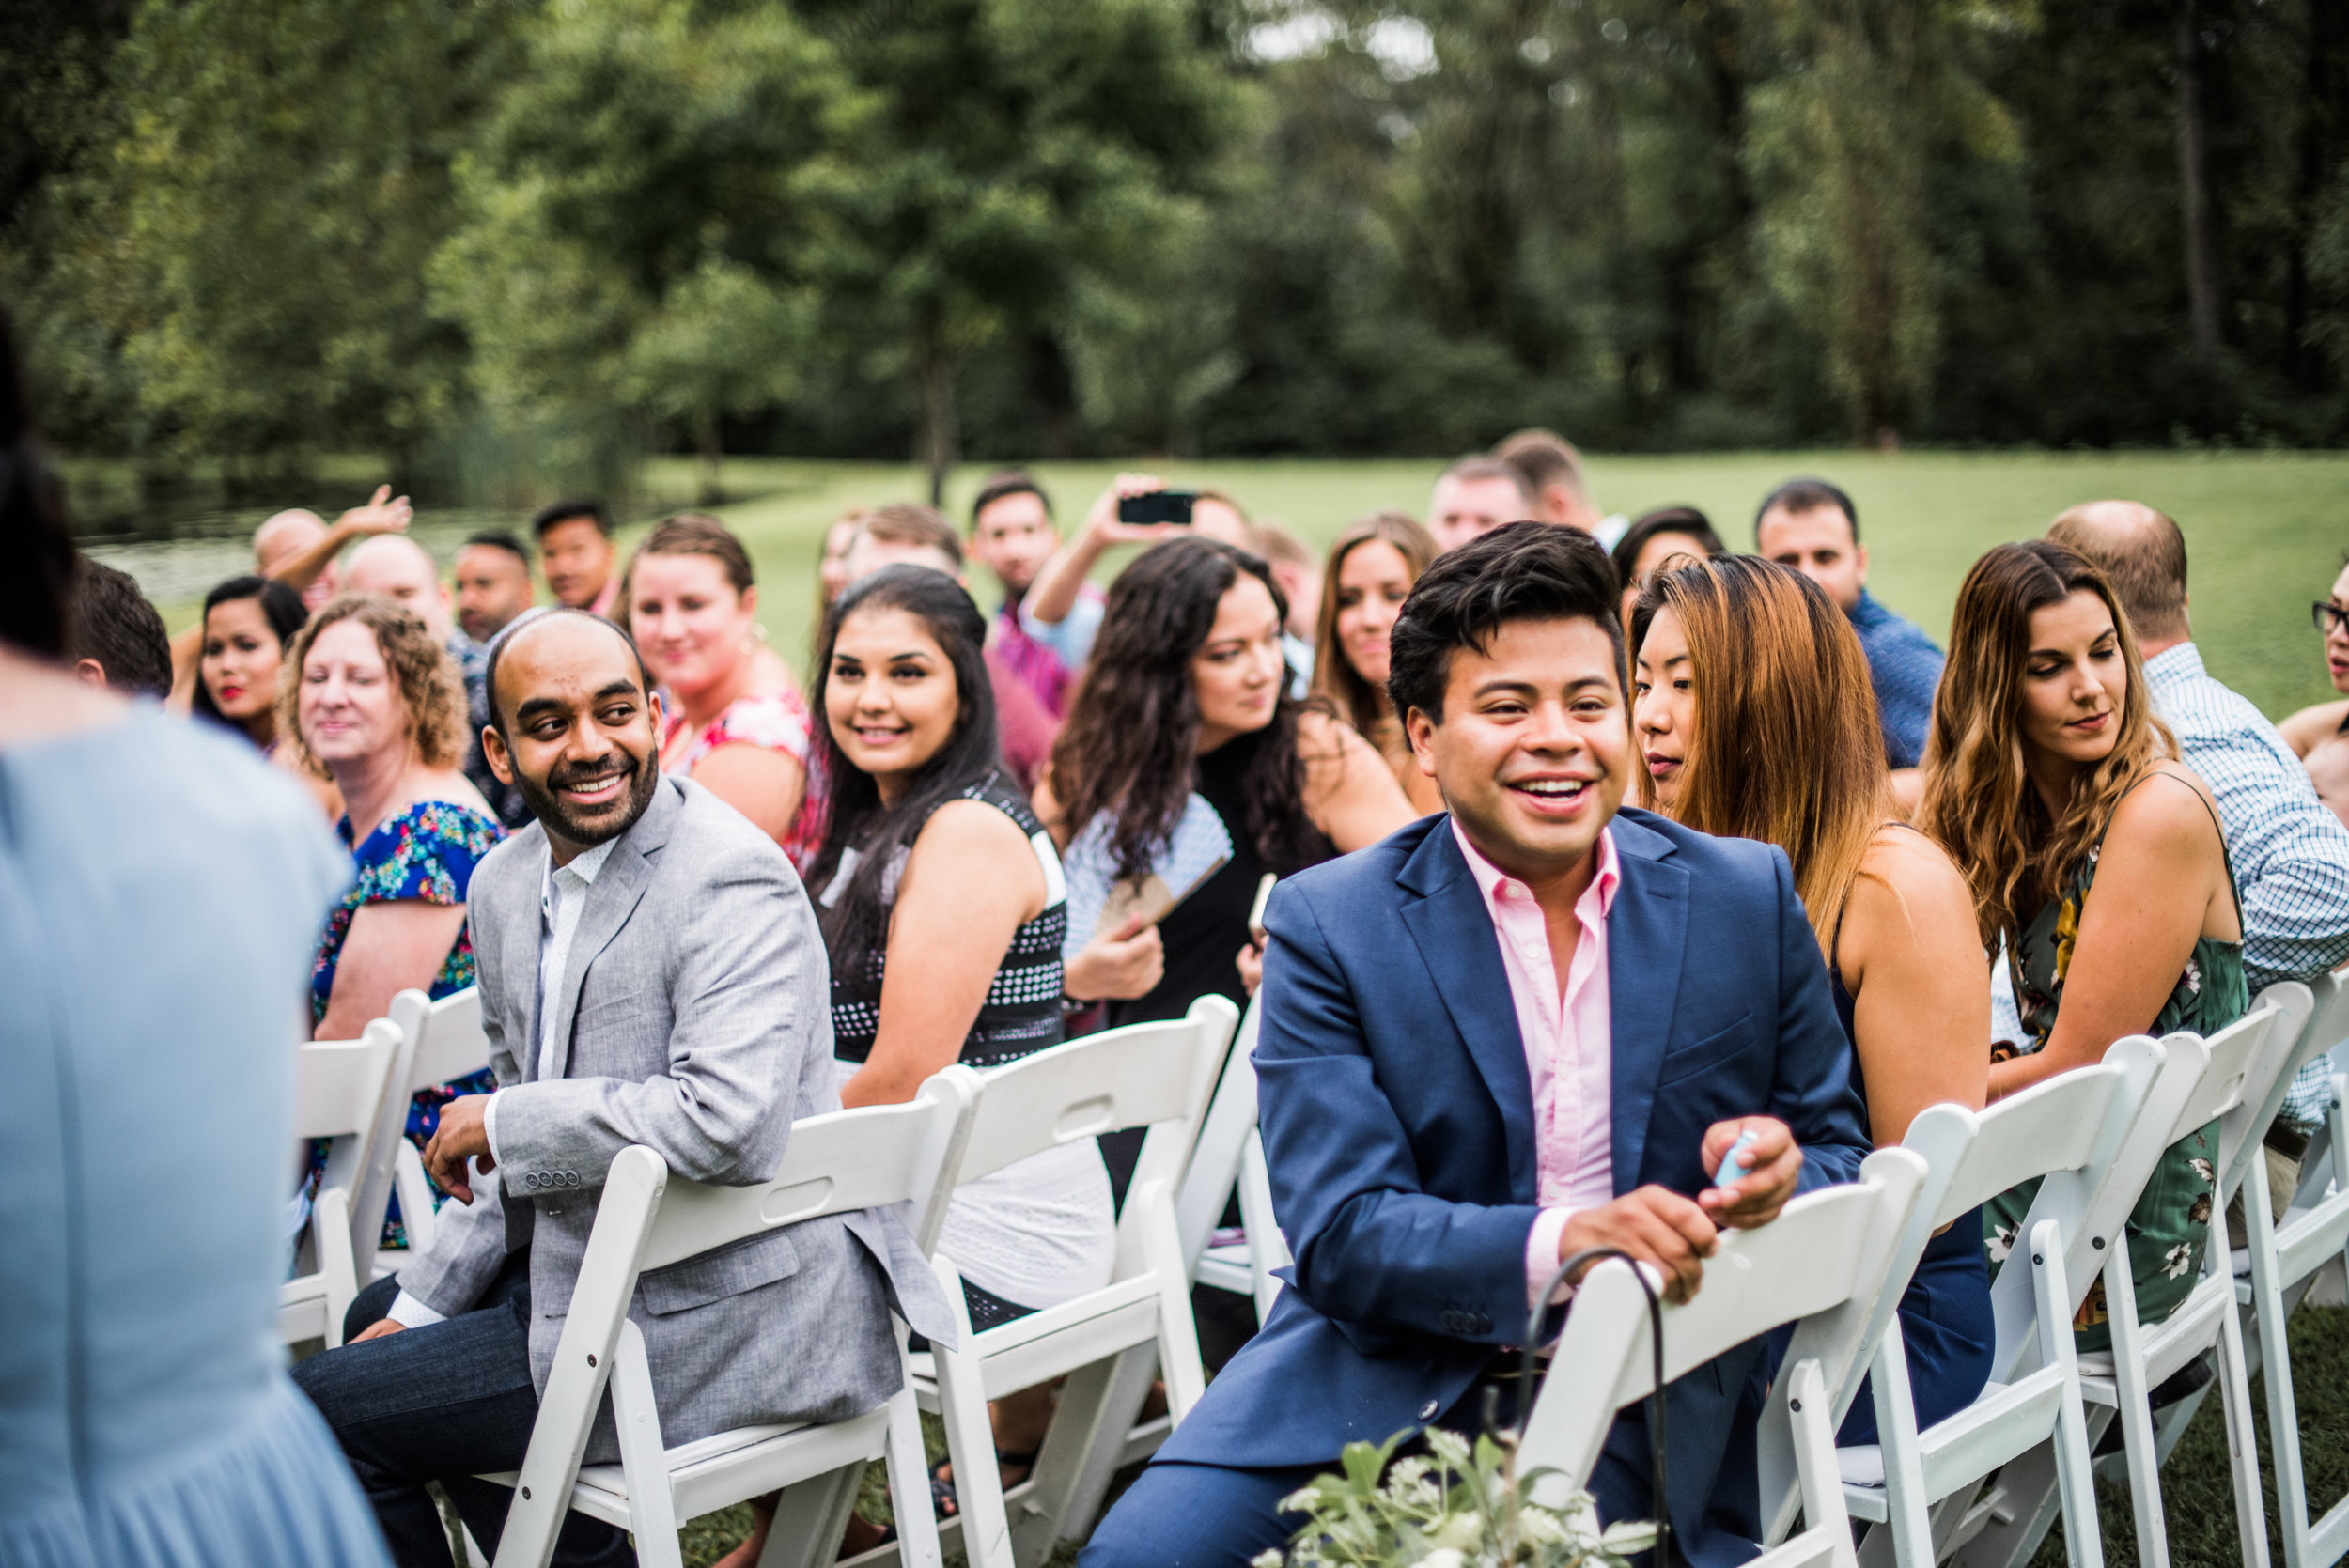 emotional guests watch bride walk down aisle